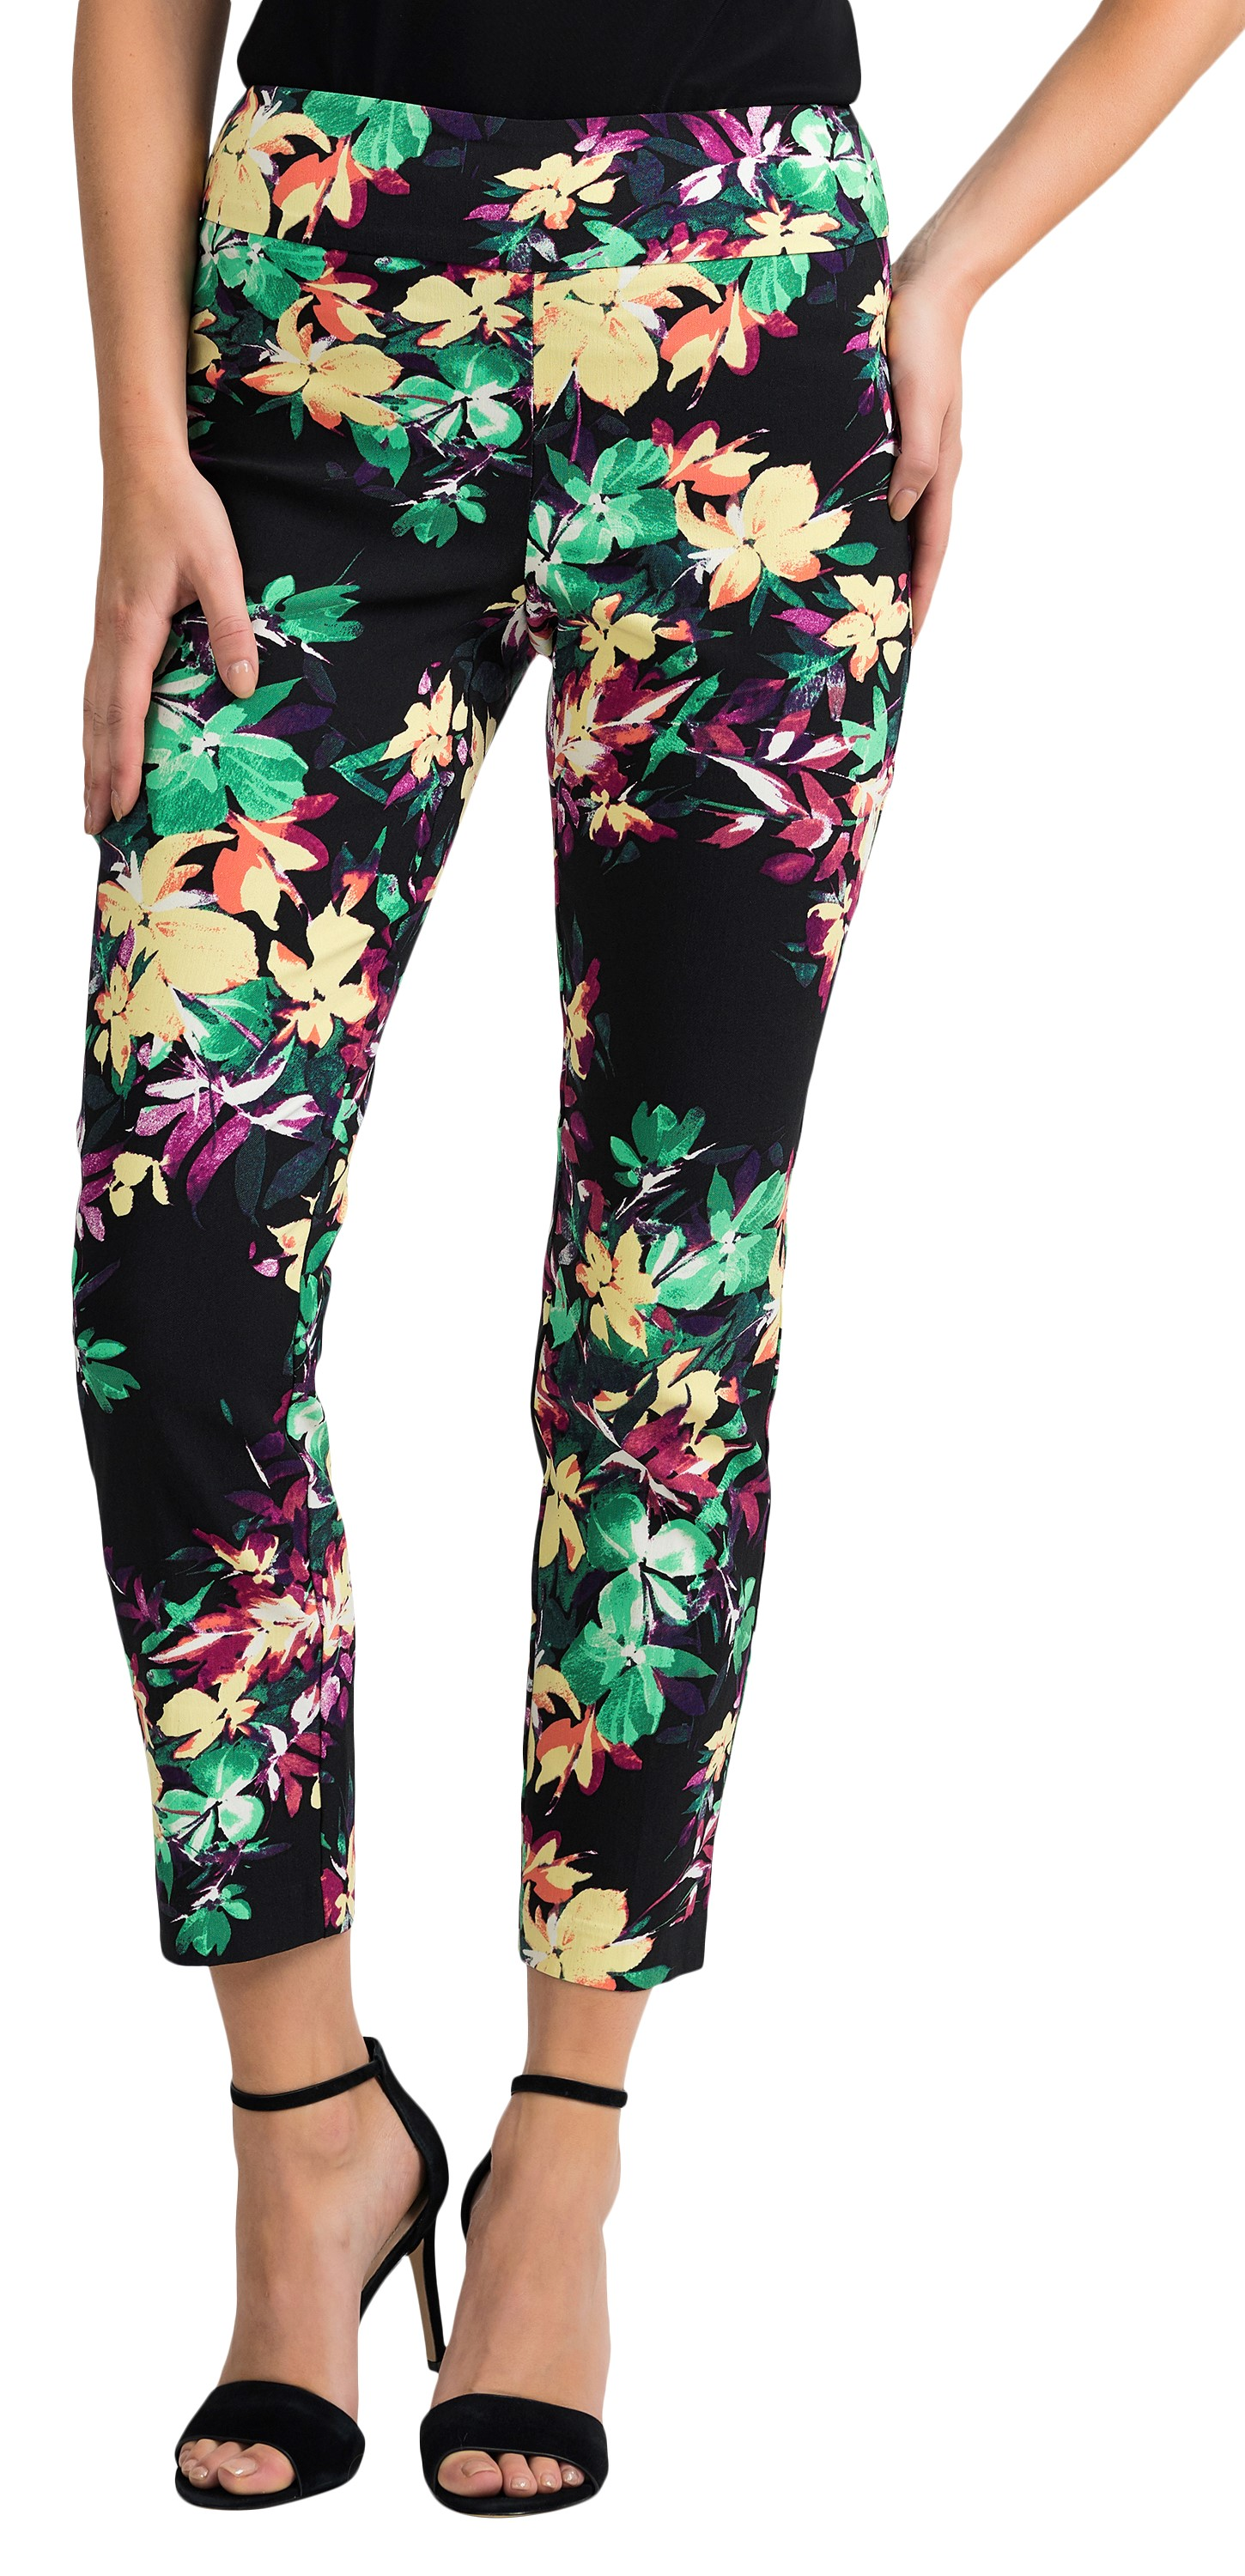 Joseph Ribkoff Womens Floral Pants Style 201390 Color Black/Multi